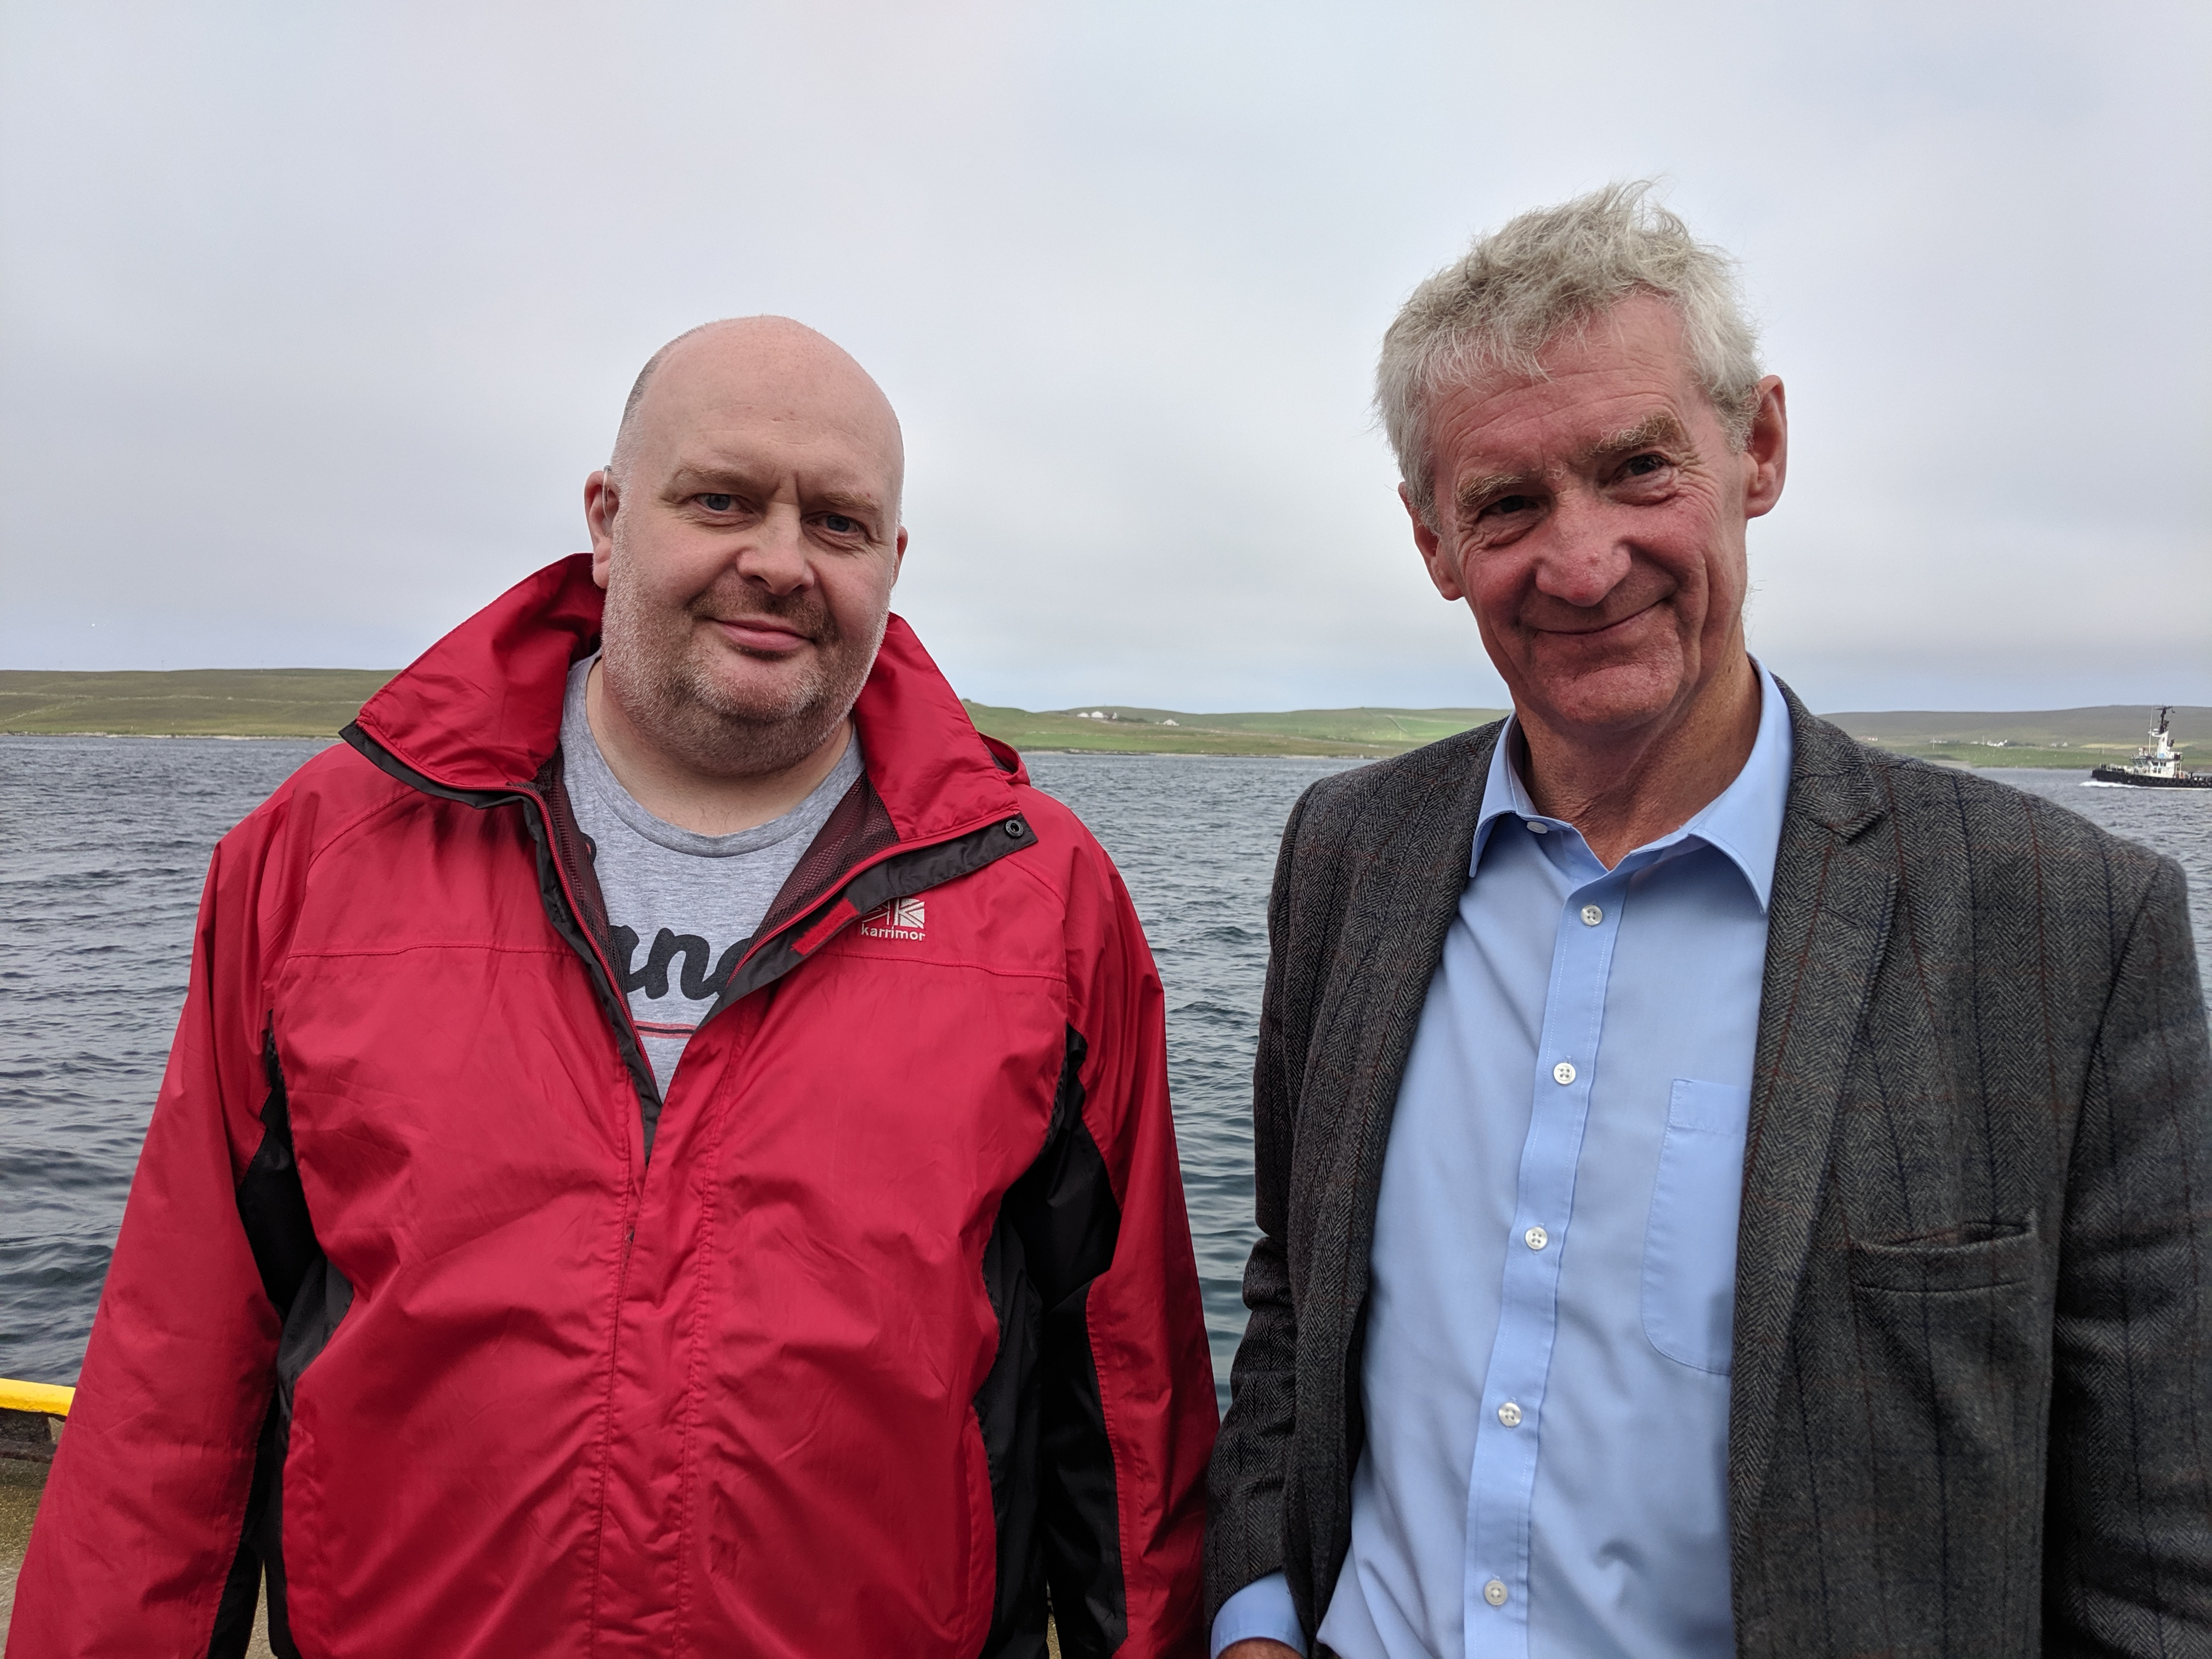 Shetland Tory candidate Brydon Goodlad and Conservative fisheries spokesman Peter Chapman